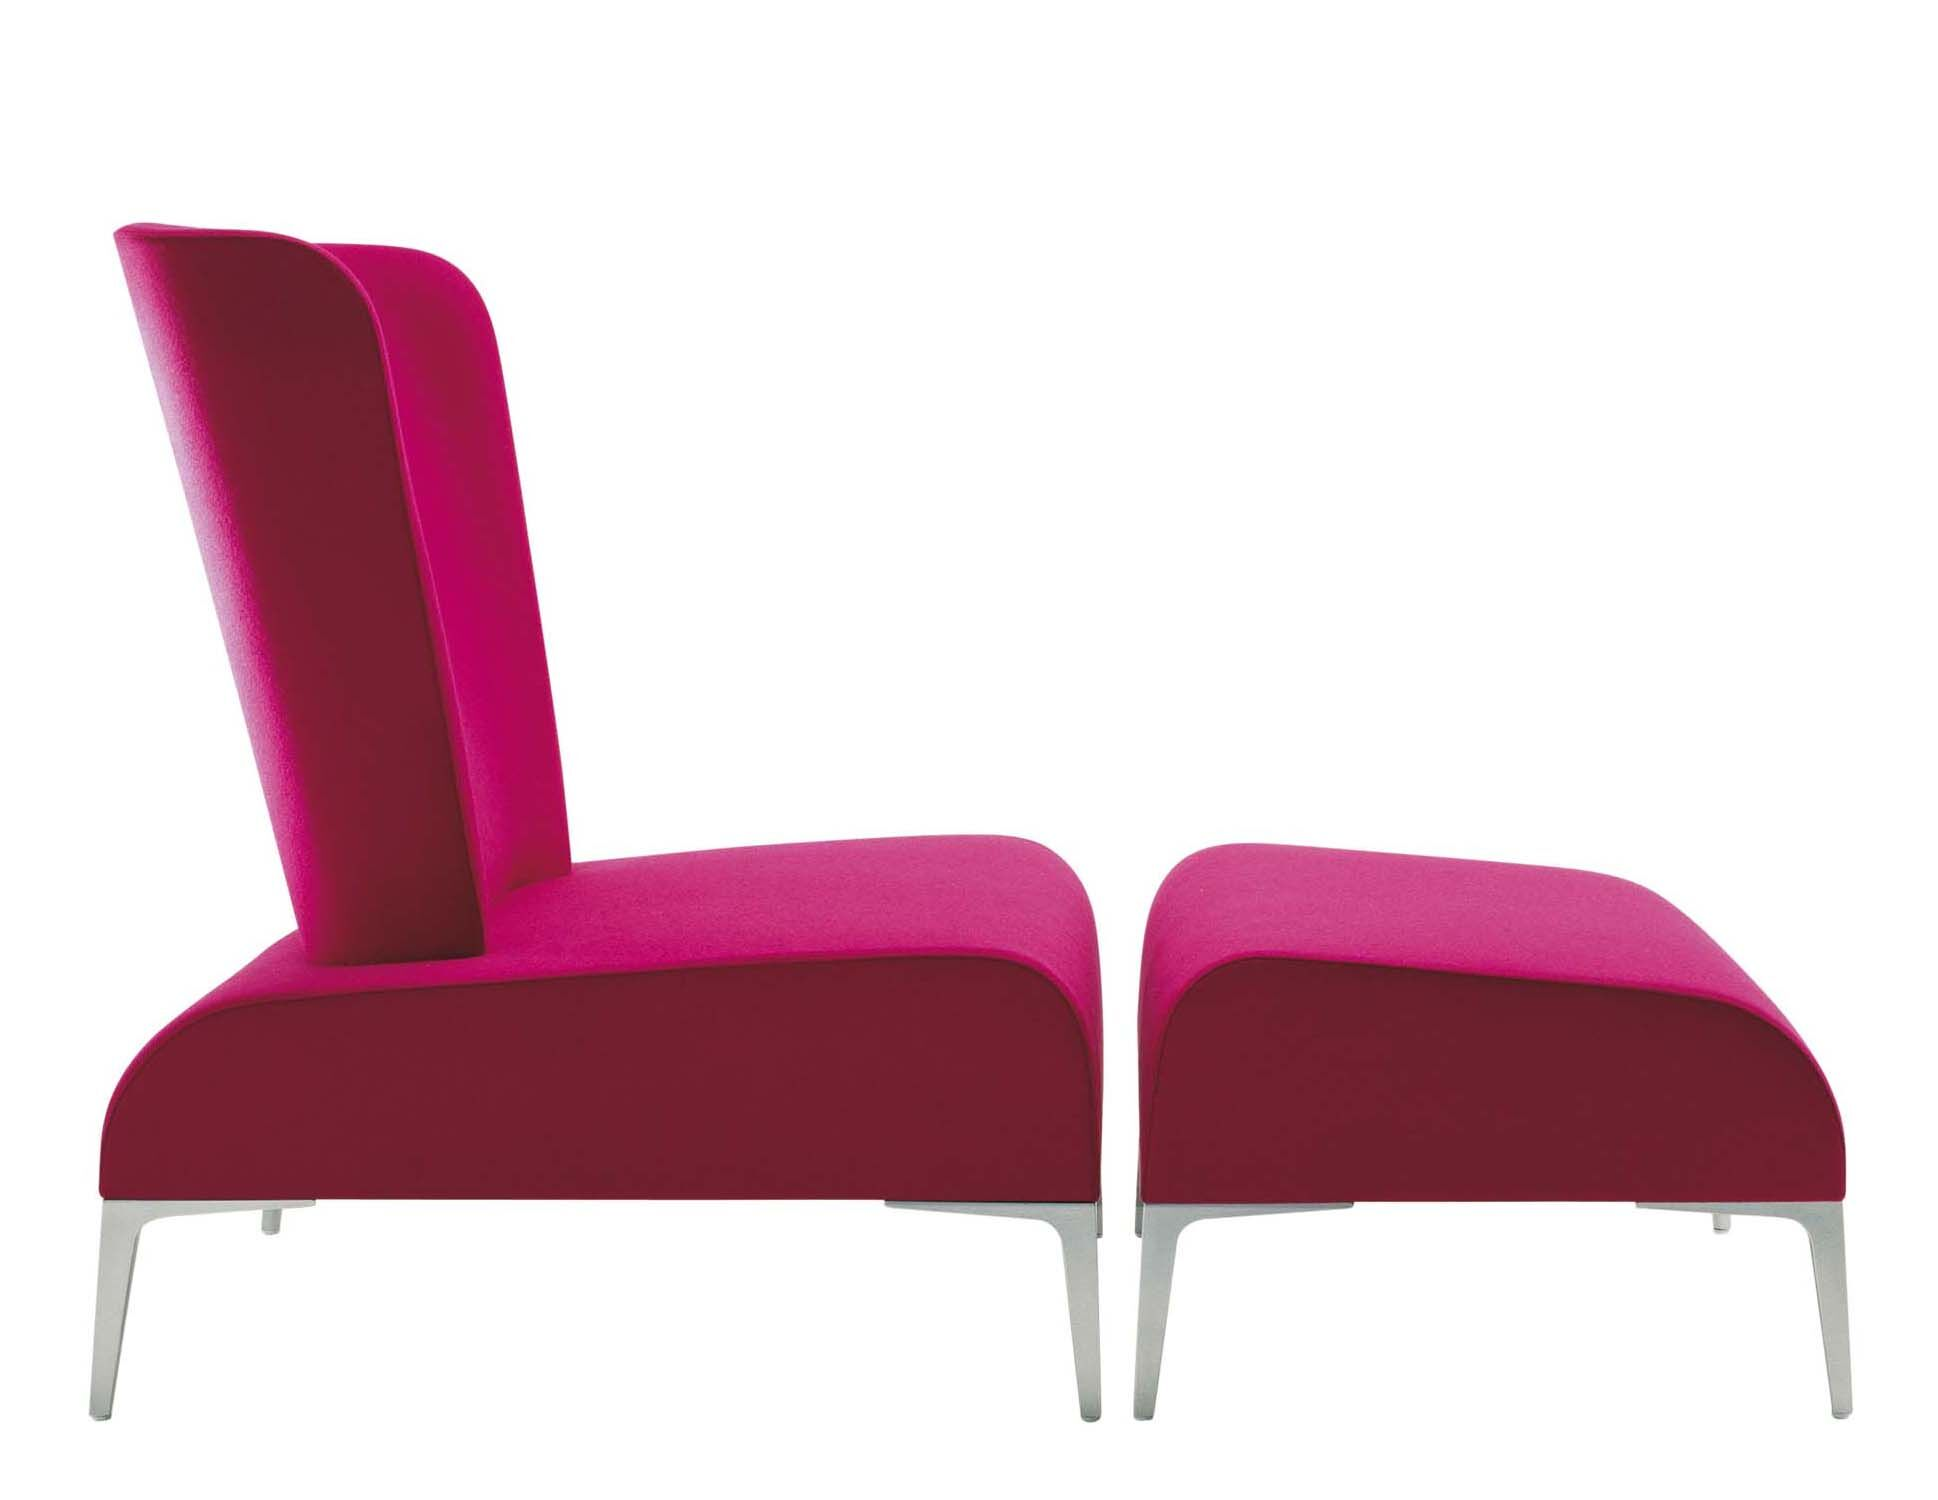 Fi Tall Lounge Chair Upholstery: Momentum Beeline Vinyl Forge, Finish: Powder Coat Aluminum